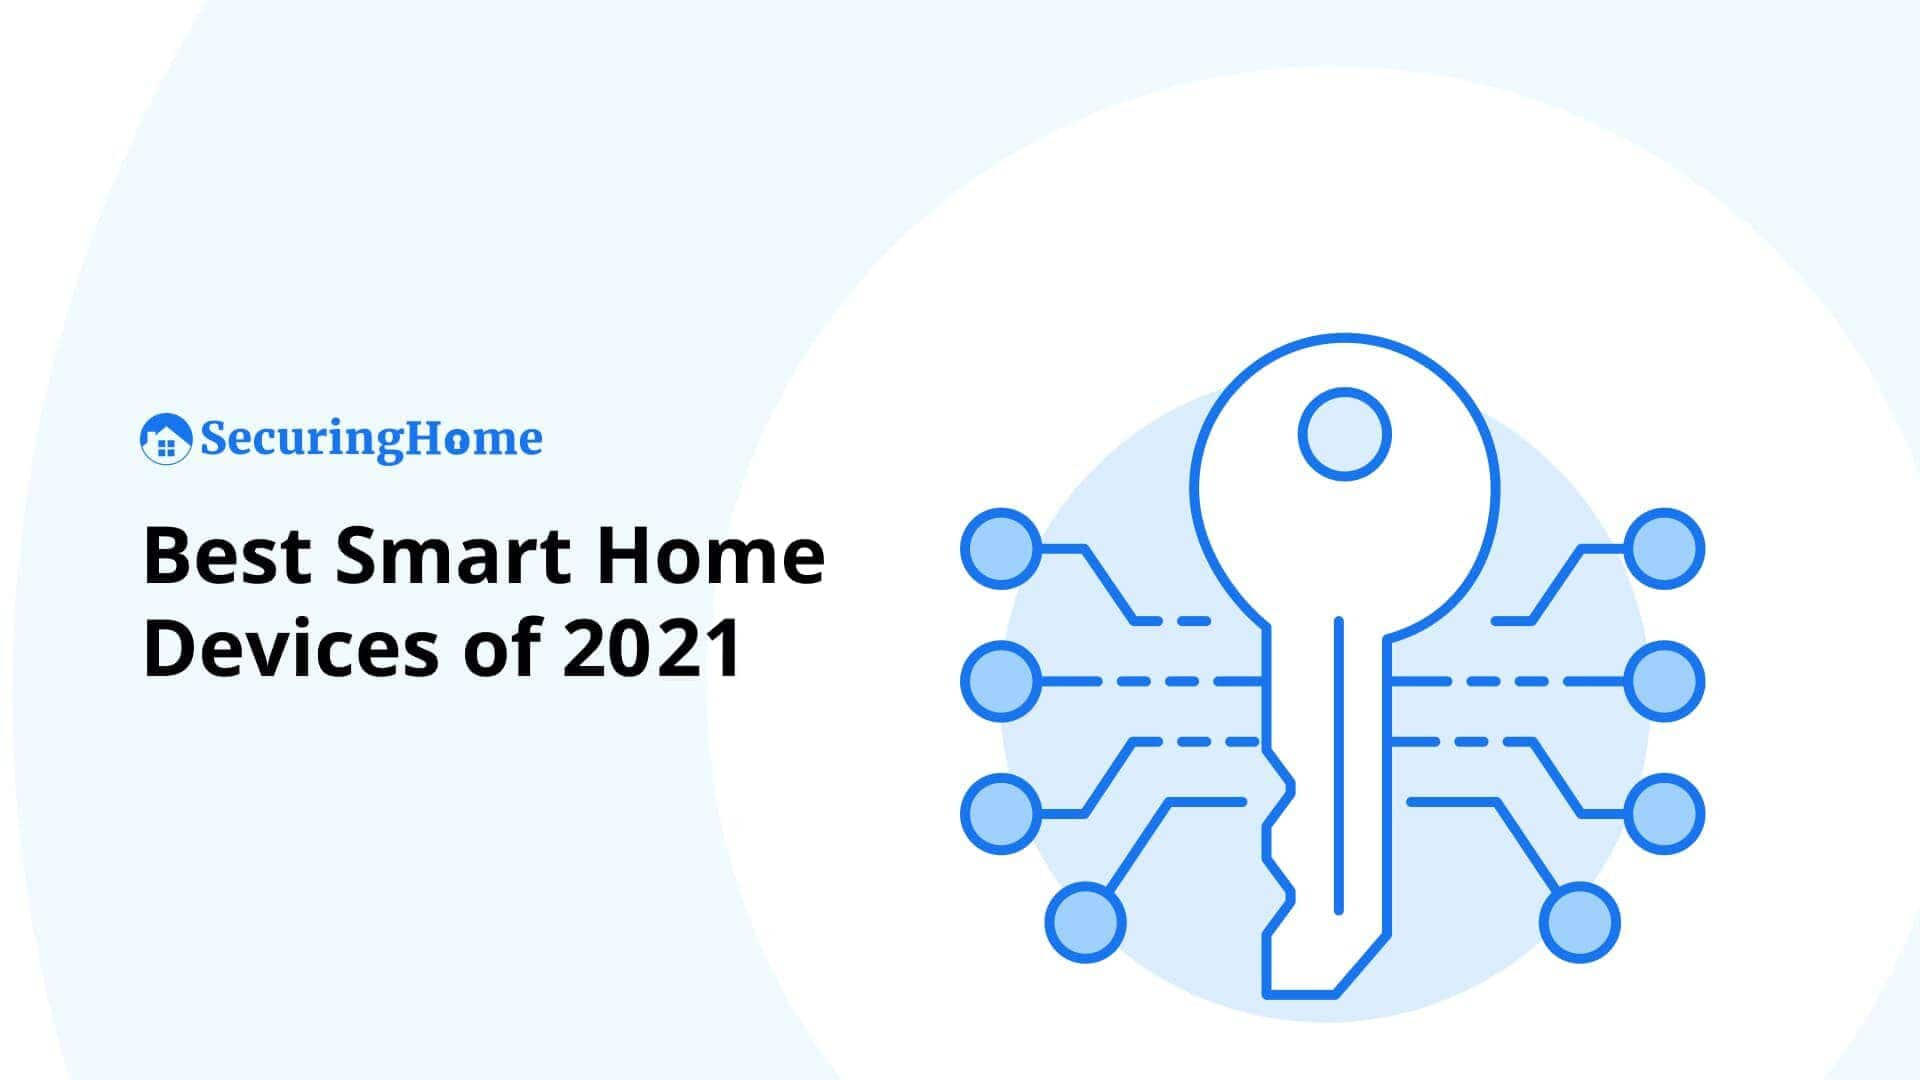 Top 10 Best Smart Home Devices of 2021